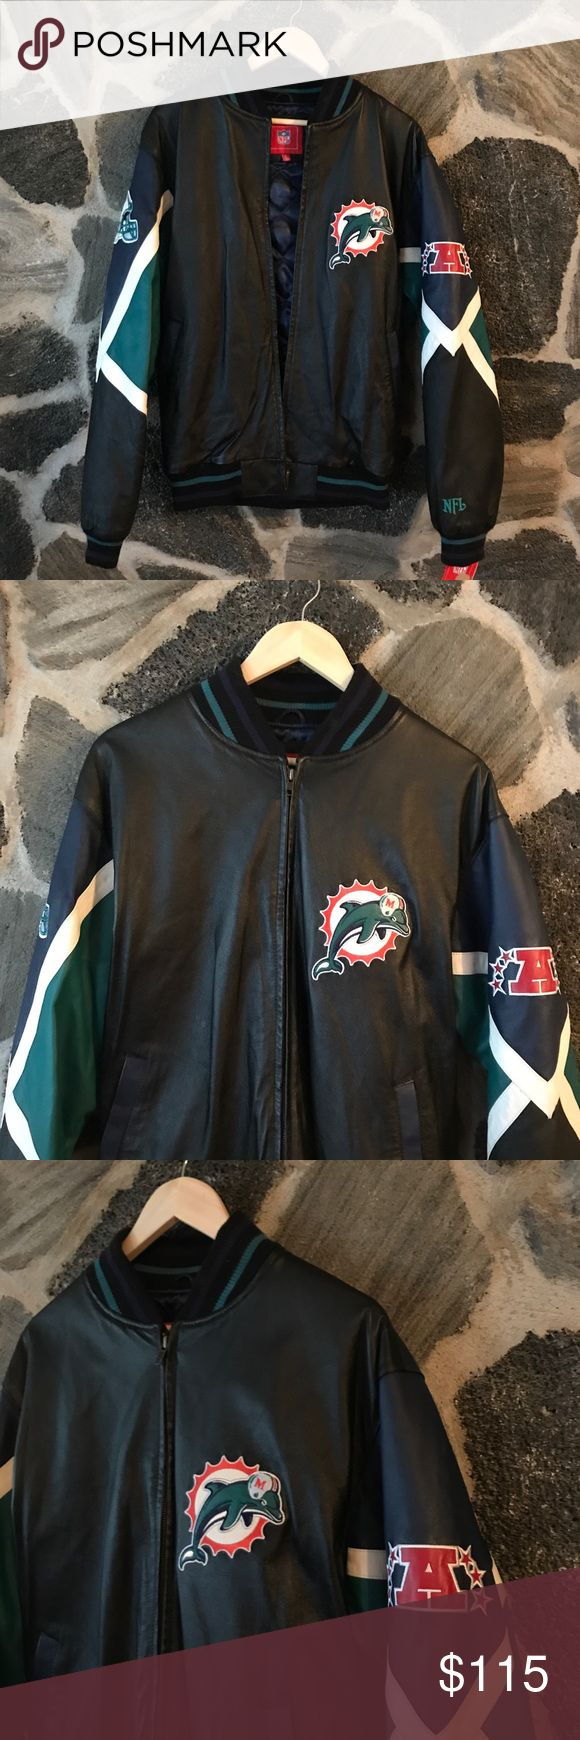 Vintage• NWT official NFL Dolphins leather coat ** BRAND NEW WITH TAGS! 🎅🏼🎄 PERFECT CHRISTMAS GIFT FOR ANY MIAMI DOLPHIN FAN **  Size: medium (runs bigger) Condition: BRAND NEW WITH TAGS OFFICIAL NFL BRAND; Genuine leather Very warm, comfortable, classic. Retail: $179  #gift #present #christmas #cybermonday #nfl #football #miami #dolphins #fins #leather #coat #authentic Jackets & Coats Bomber & Varsity